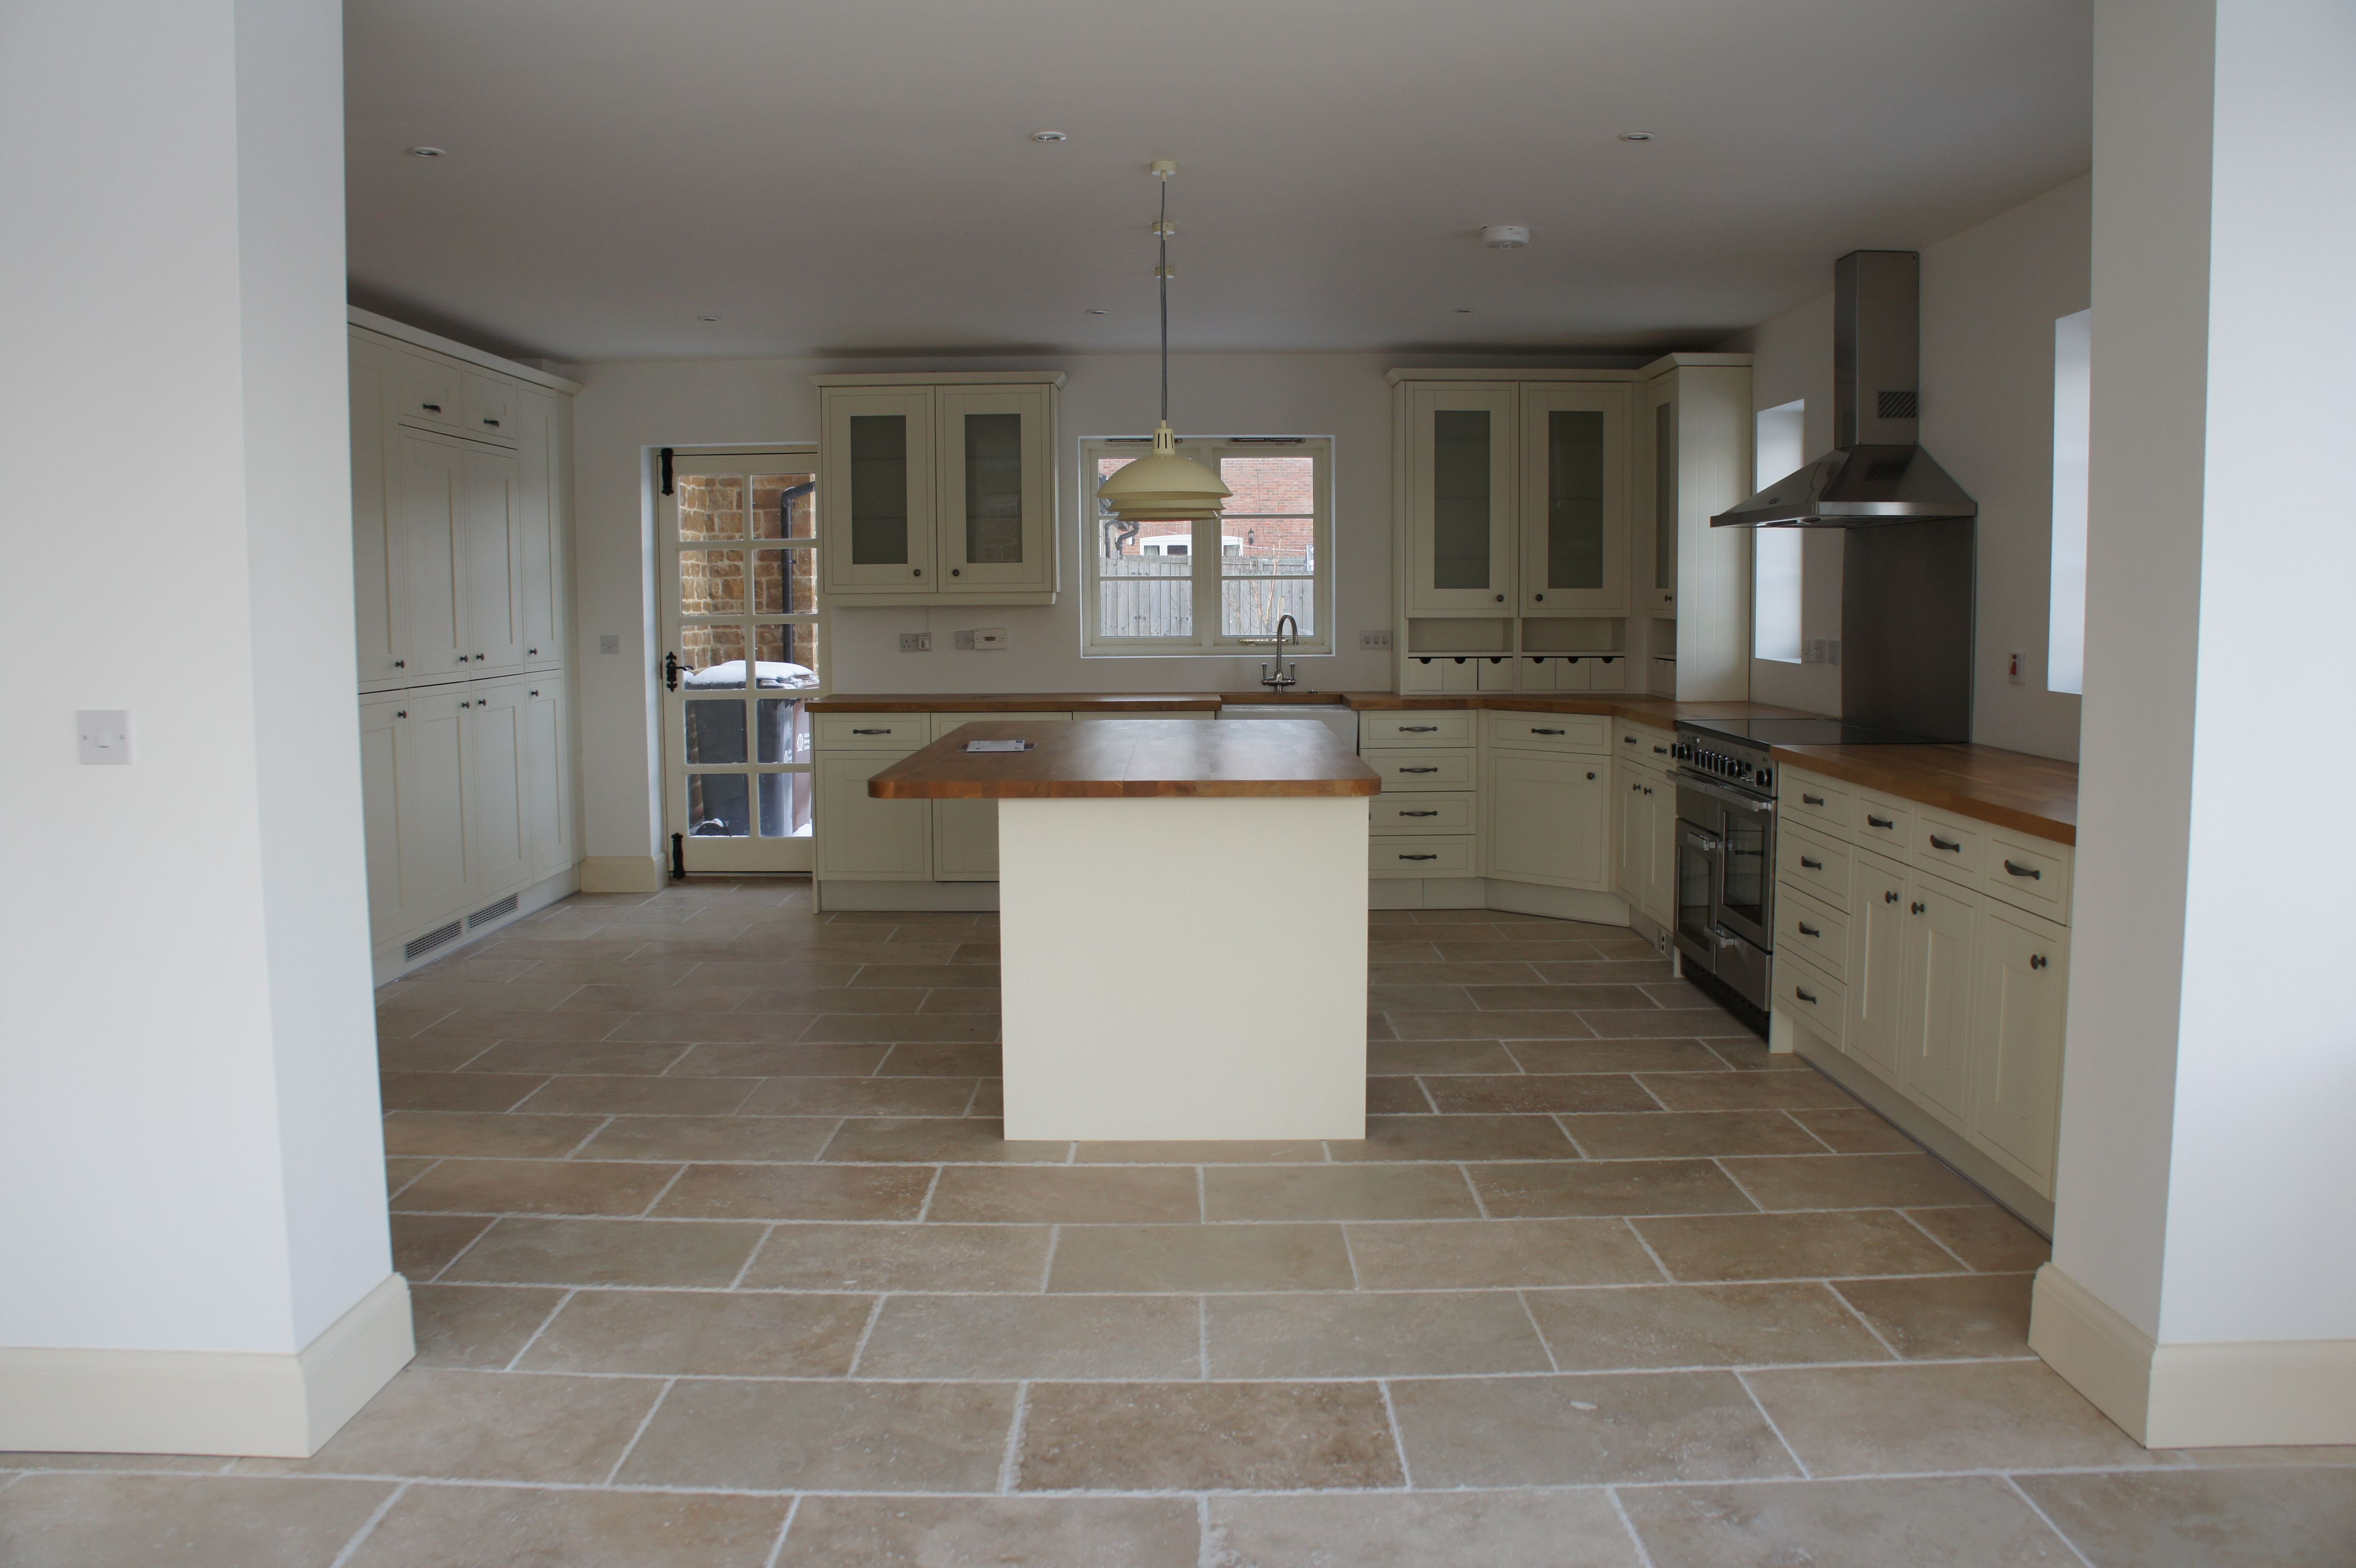 These Gorgeous Rustic Travertine Tiles Have Been Used In This Fab Kitchen To Create An Amazing Family Sp Kitchen Flooring Cleaning Marble Floors House Flooring